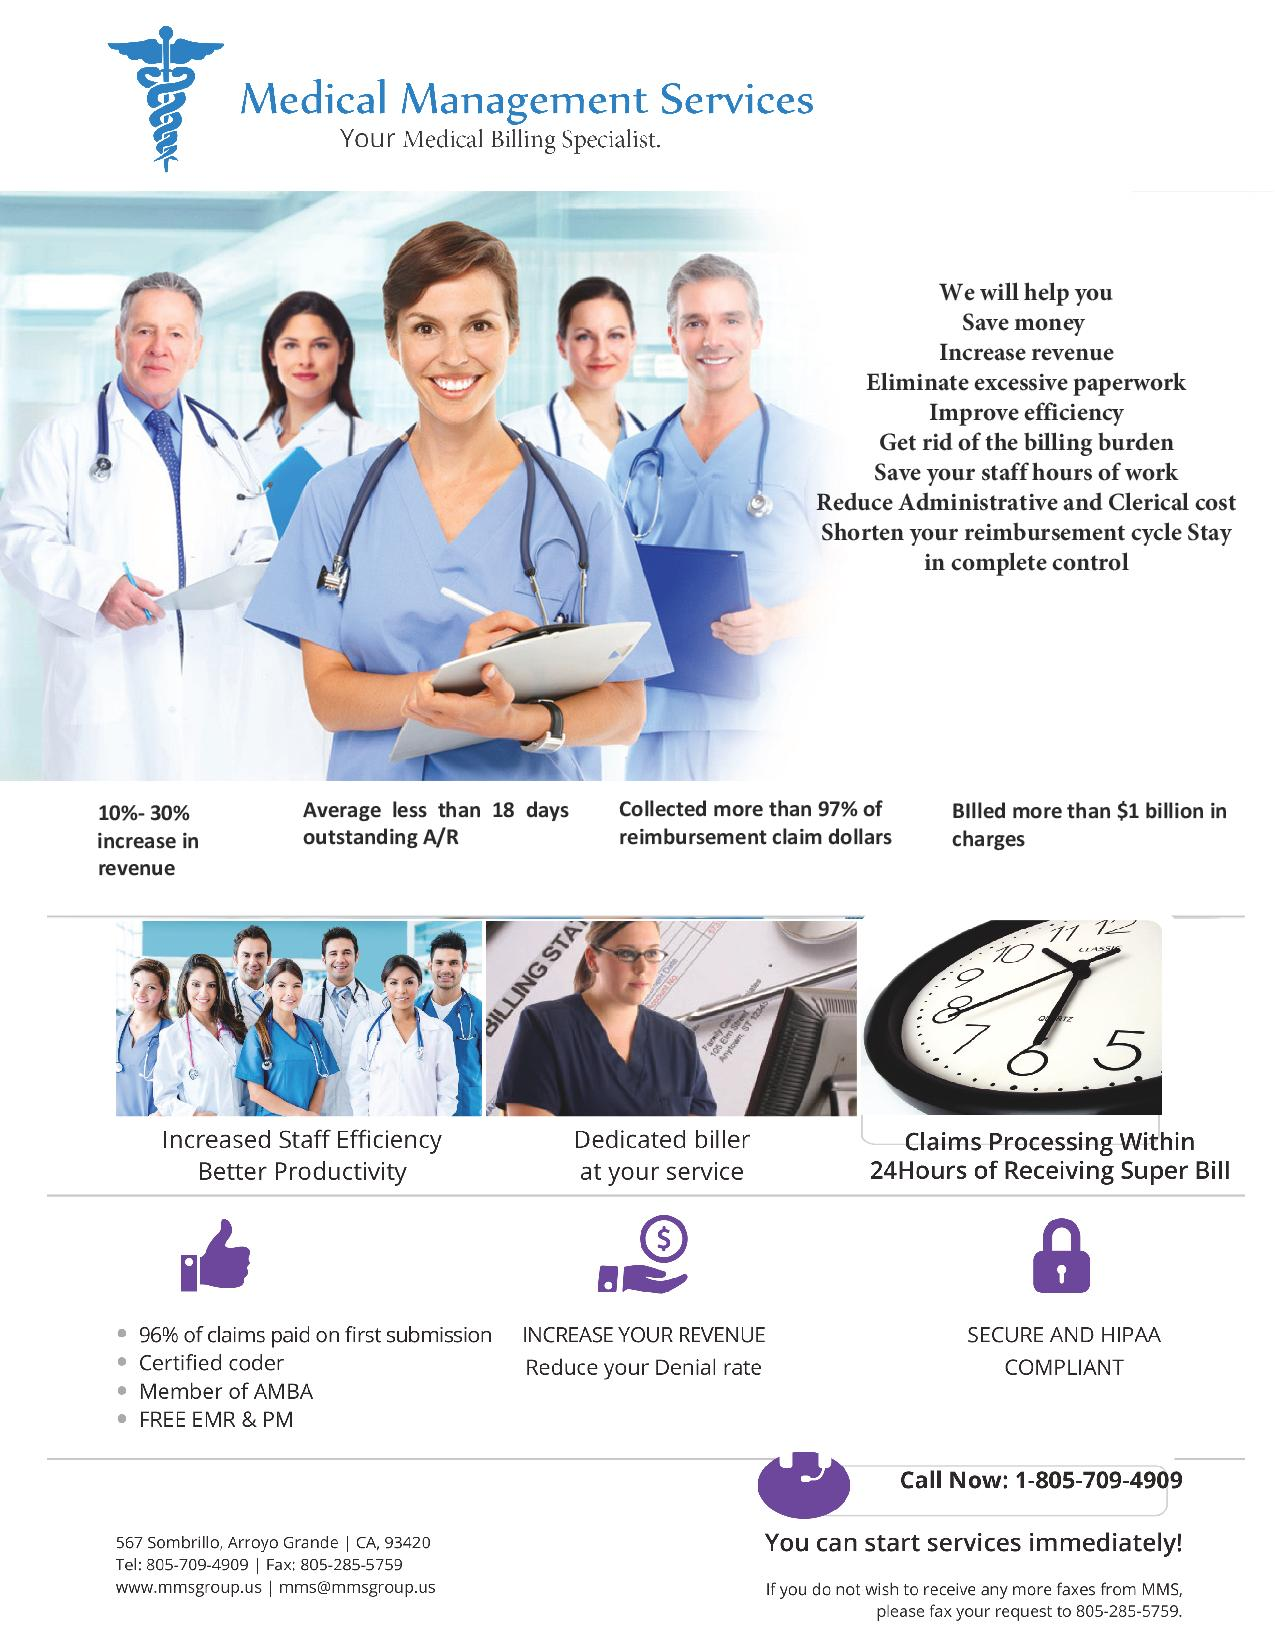 Your Medical Billing Specialist | MMS